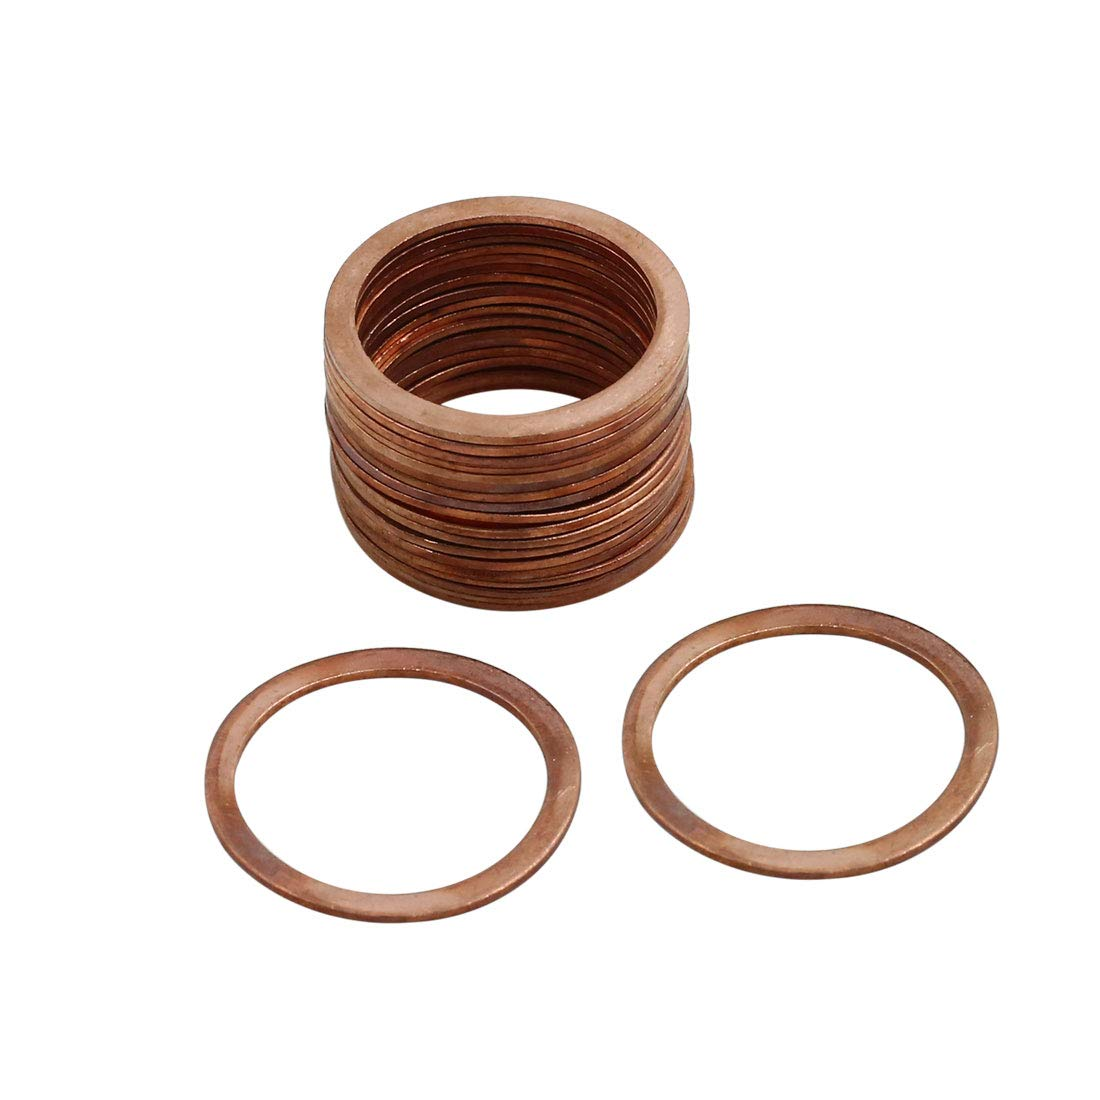 X AUTOHAUX 20pcs 24mm Inner Diameter Copper Washers Flat Sealing Gaskets Rings by X AUTOHAUX (Image #1)